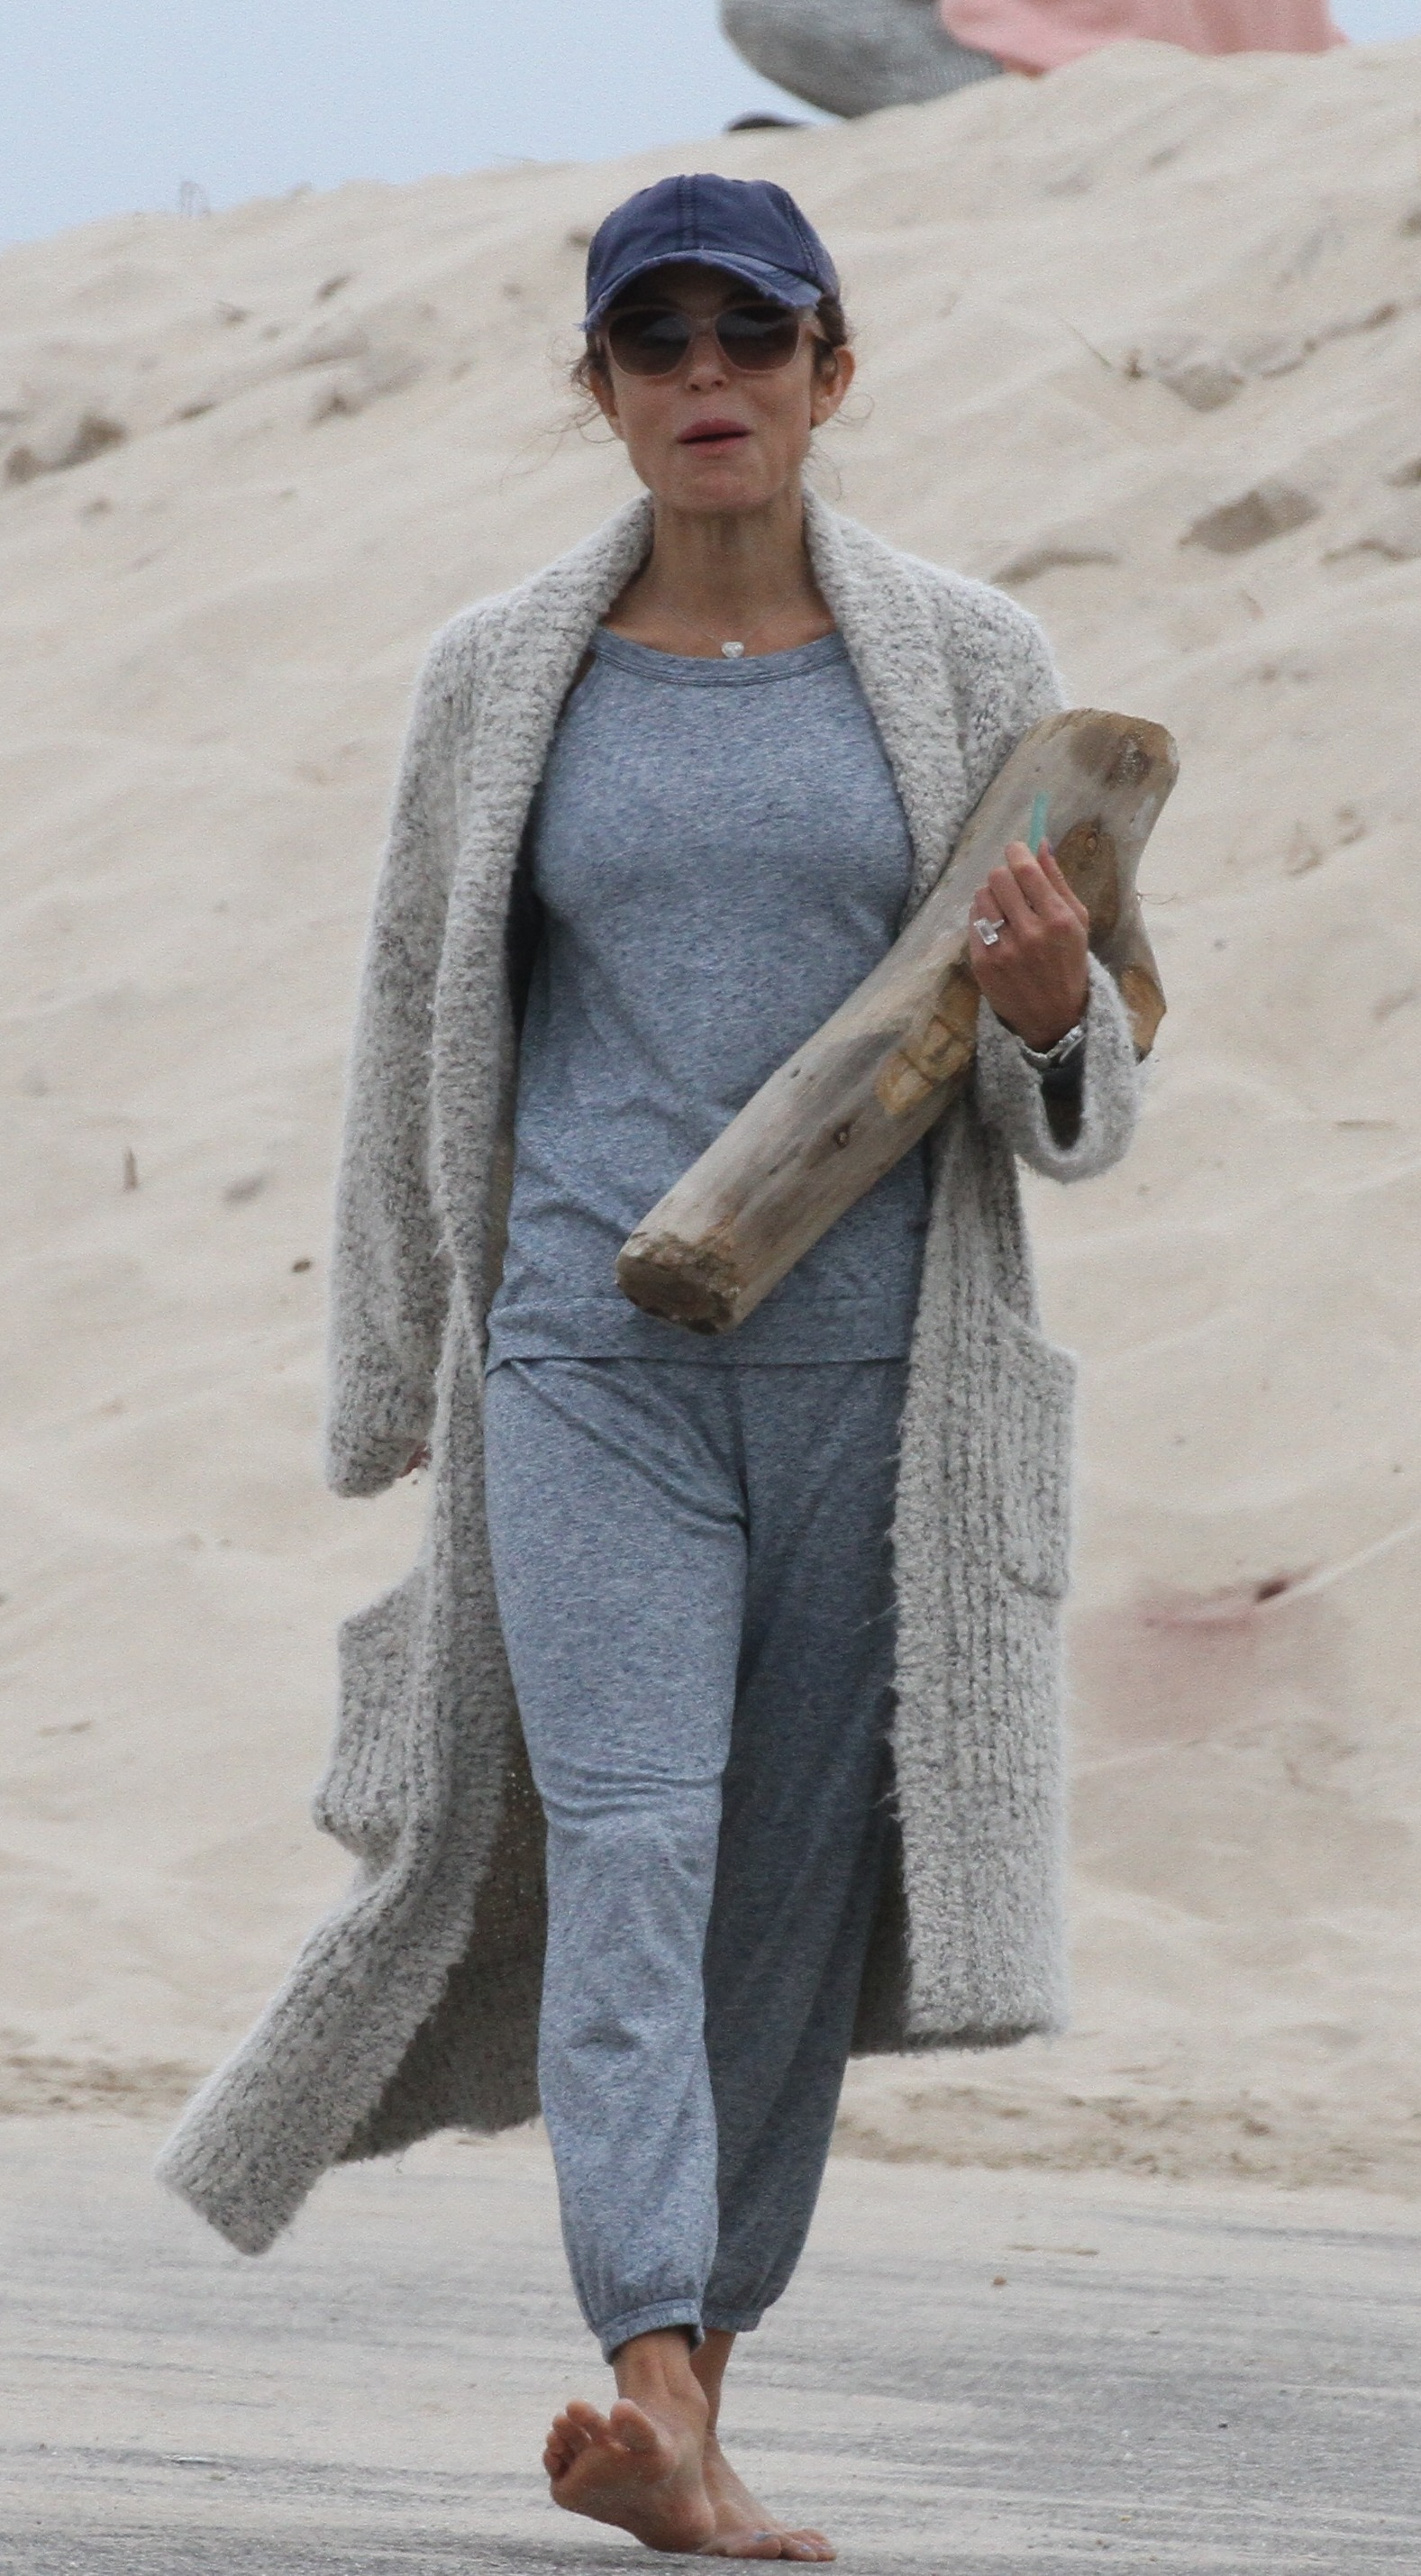 Bethenny Frankel was spotted taking a nice walk along the beach in The Hamptons, New York on June 22, 2019.